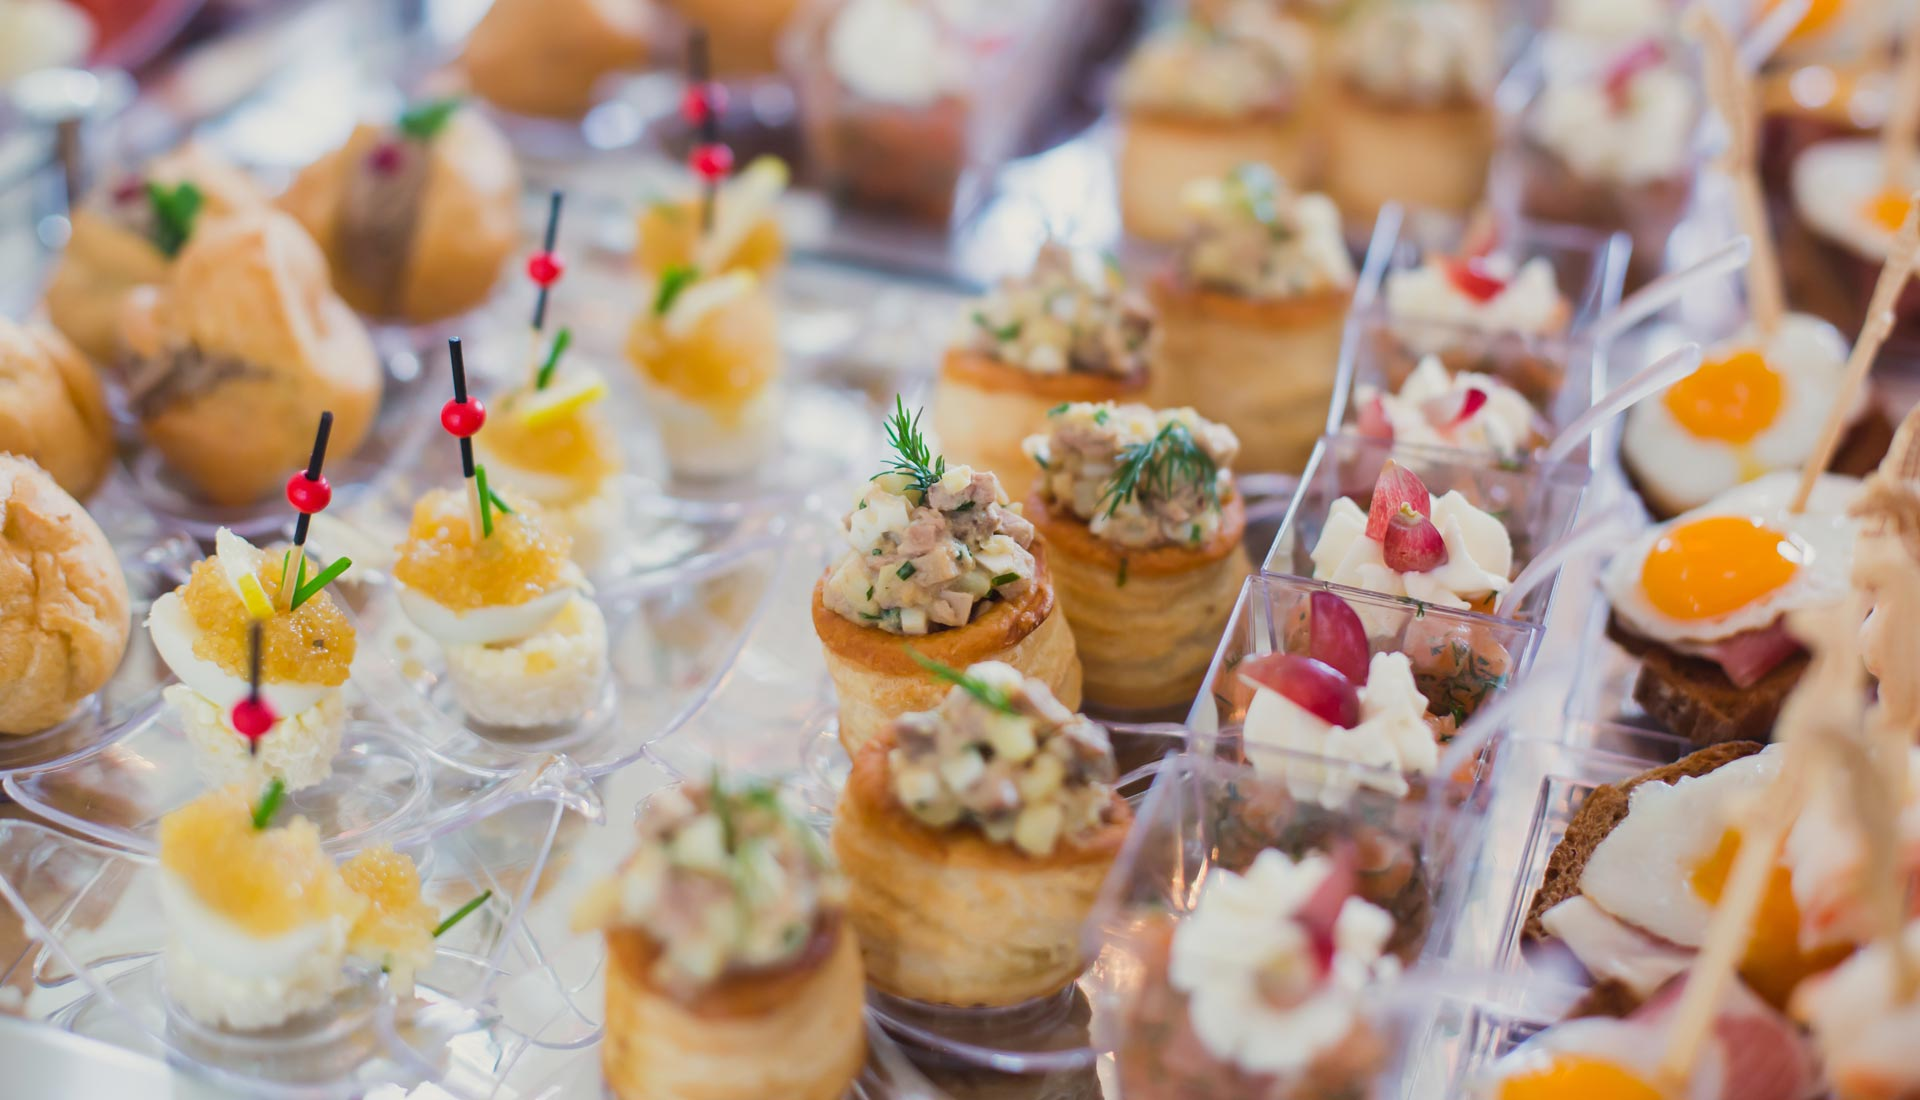 Divine catering presentations.